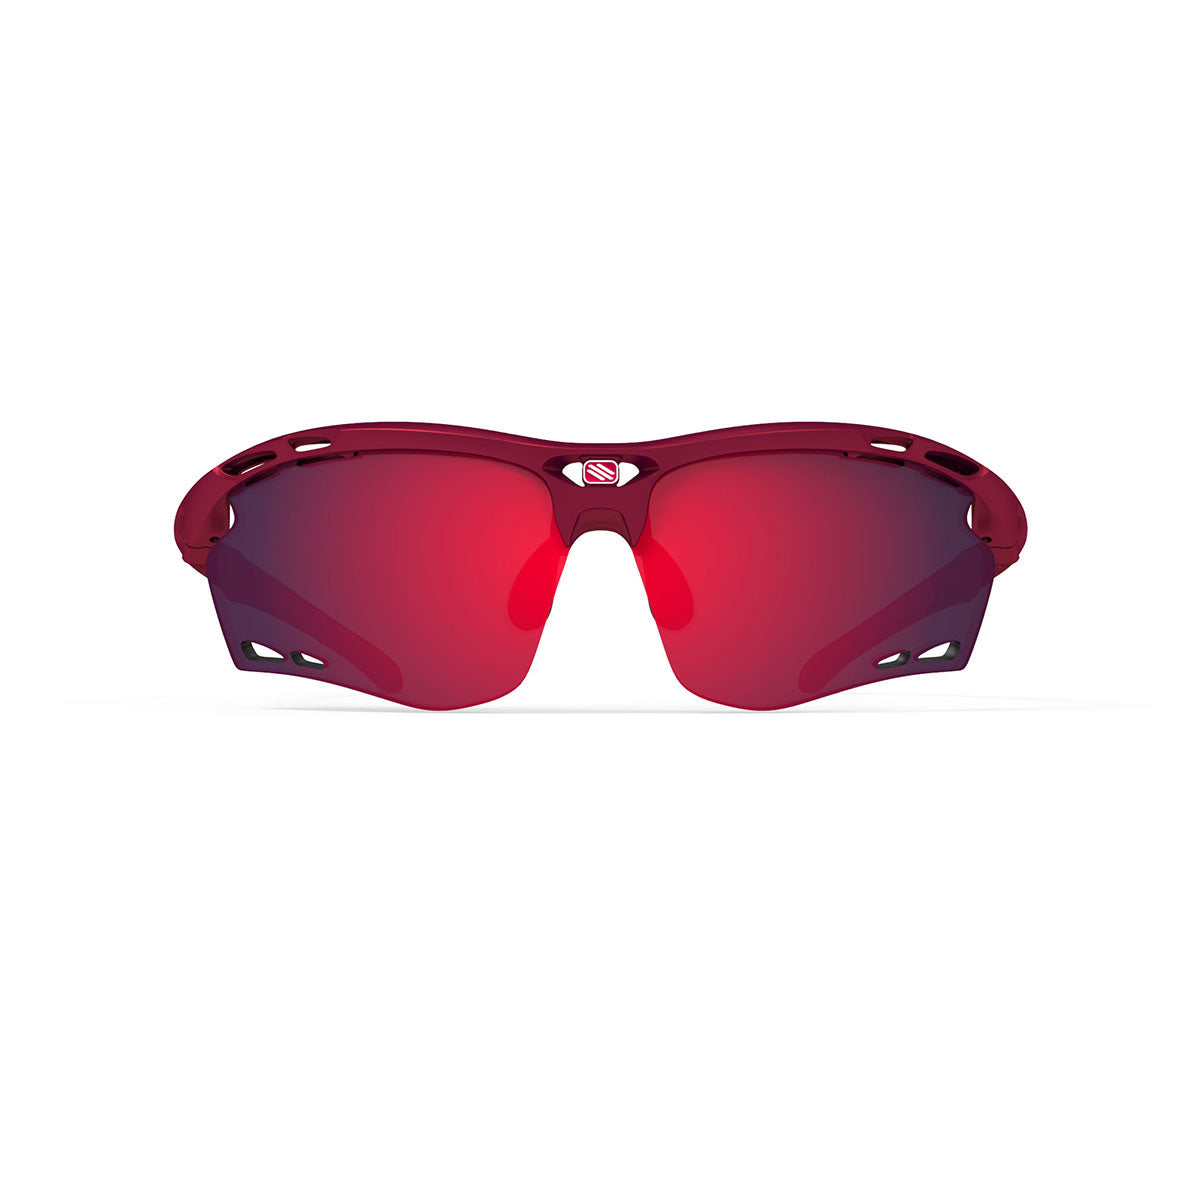 Rudy Project - Propulse - frame color: Merlot Matte - lens color: Multilaser Red - Bumper Color:  - photo angle: Front View Variant Hover Image